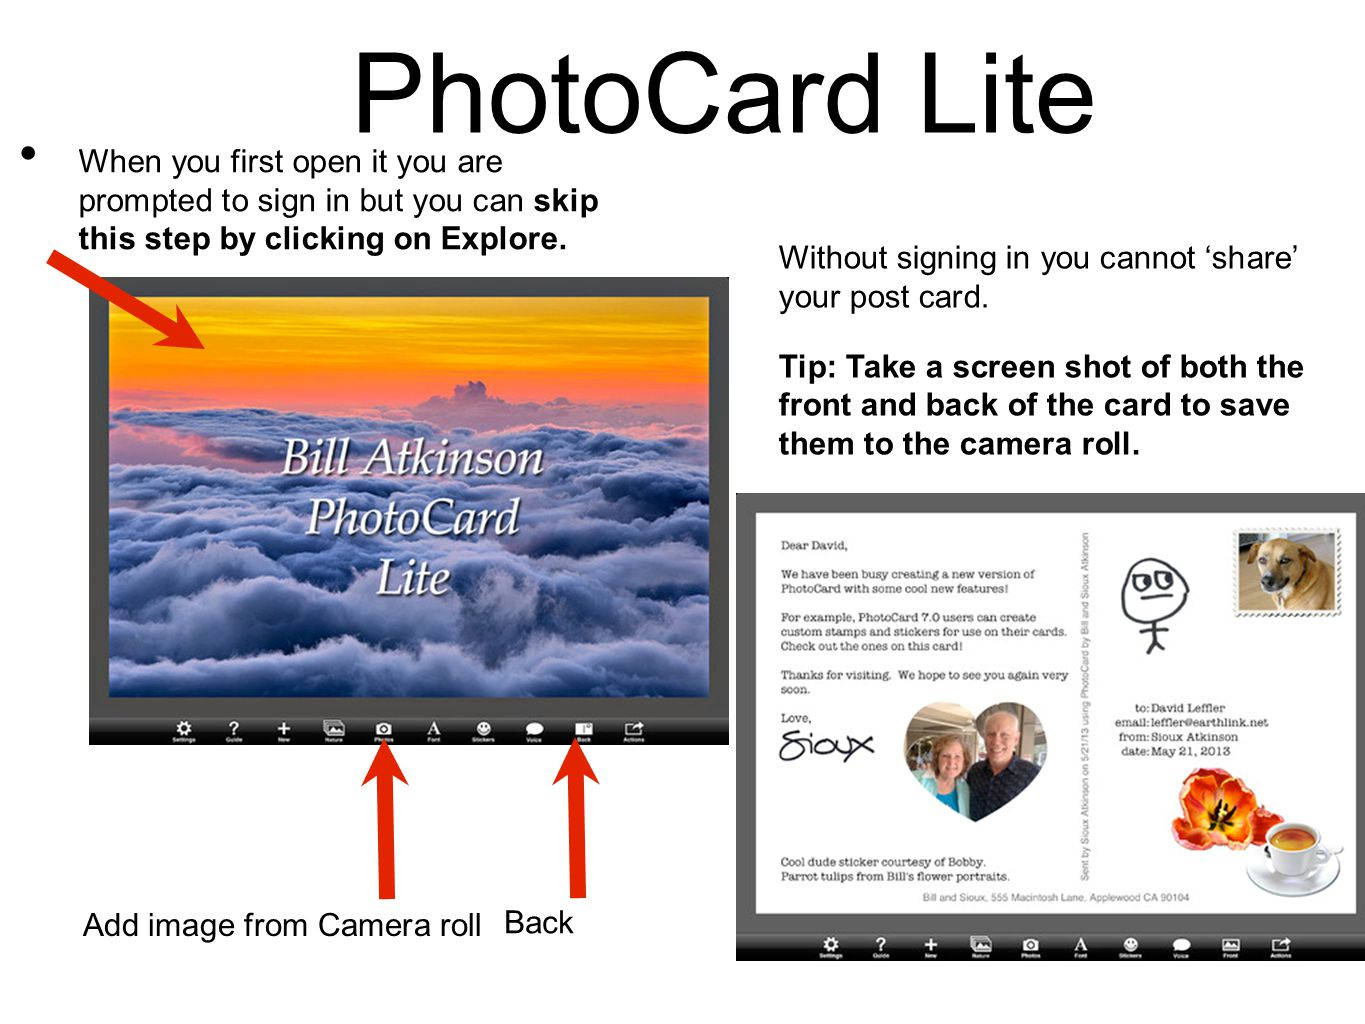 PhotoCard Lite When you first open it you are prompted to sign in but you can skip this step by clicking on Explore. Back Add image from Camera roll W